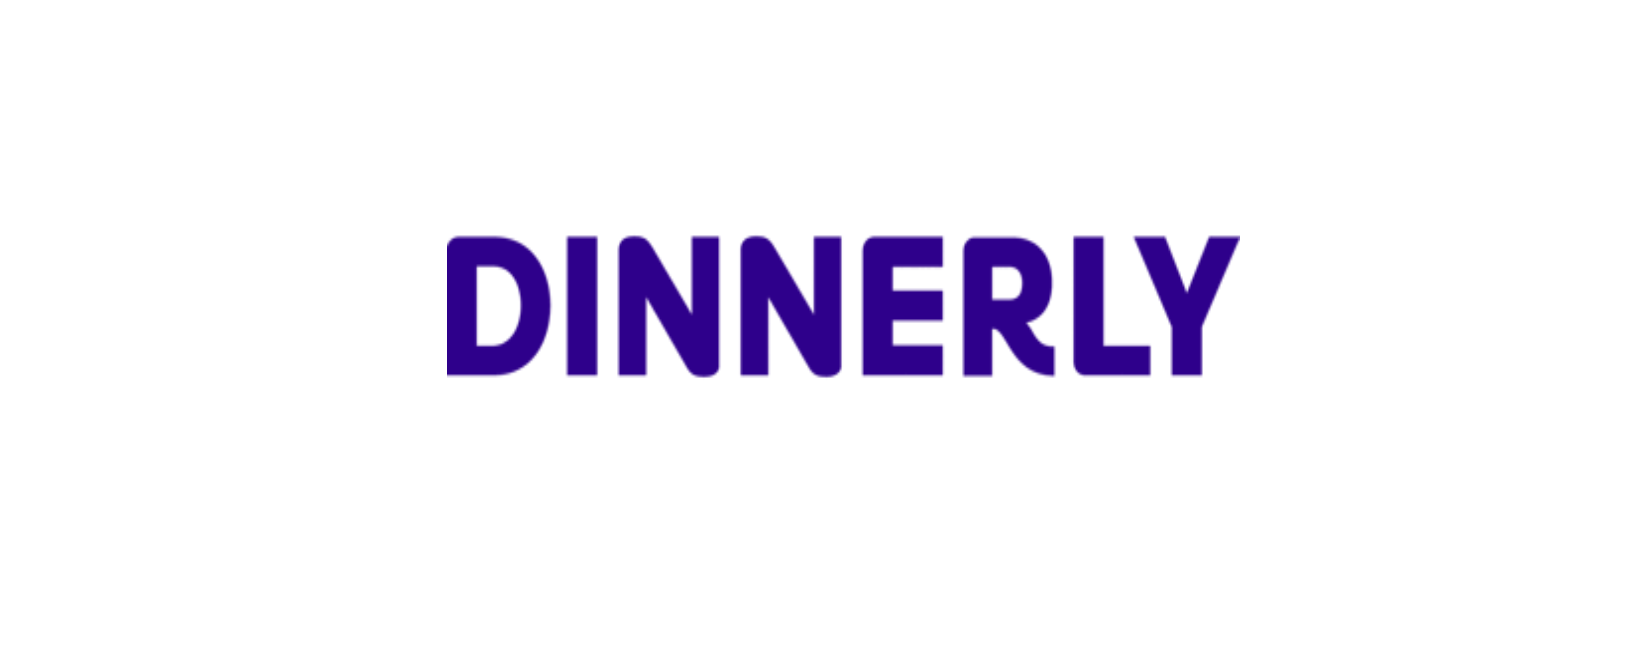 Dinnerly Discount Code 2021